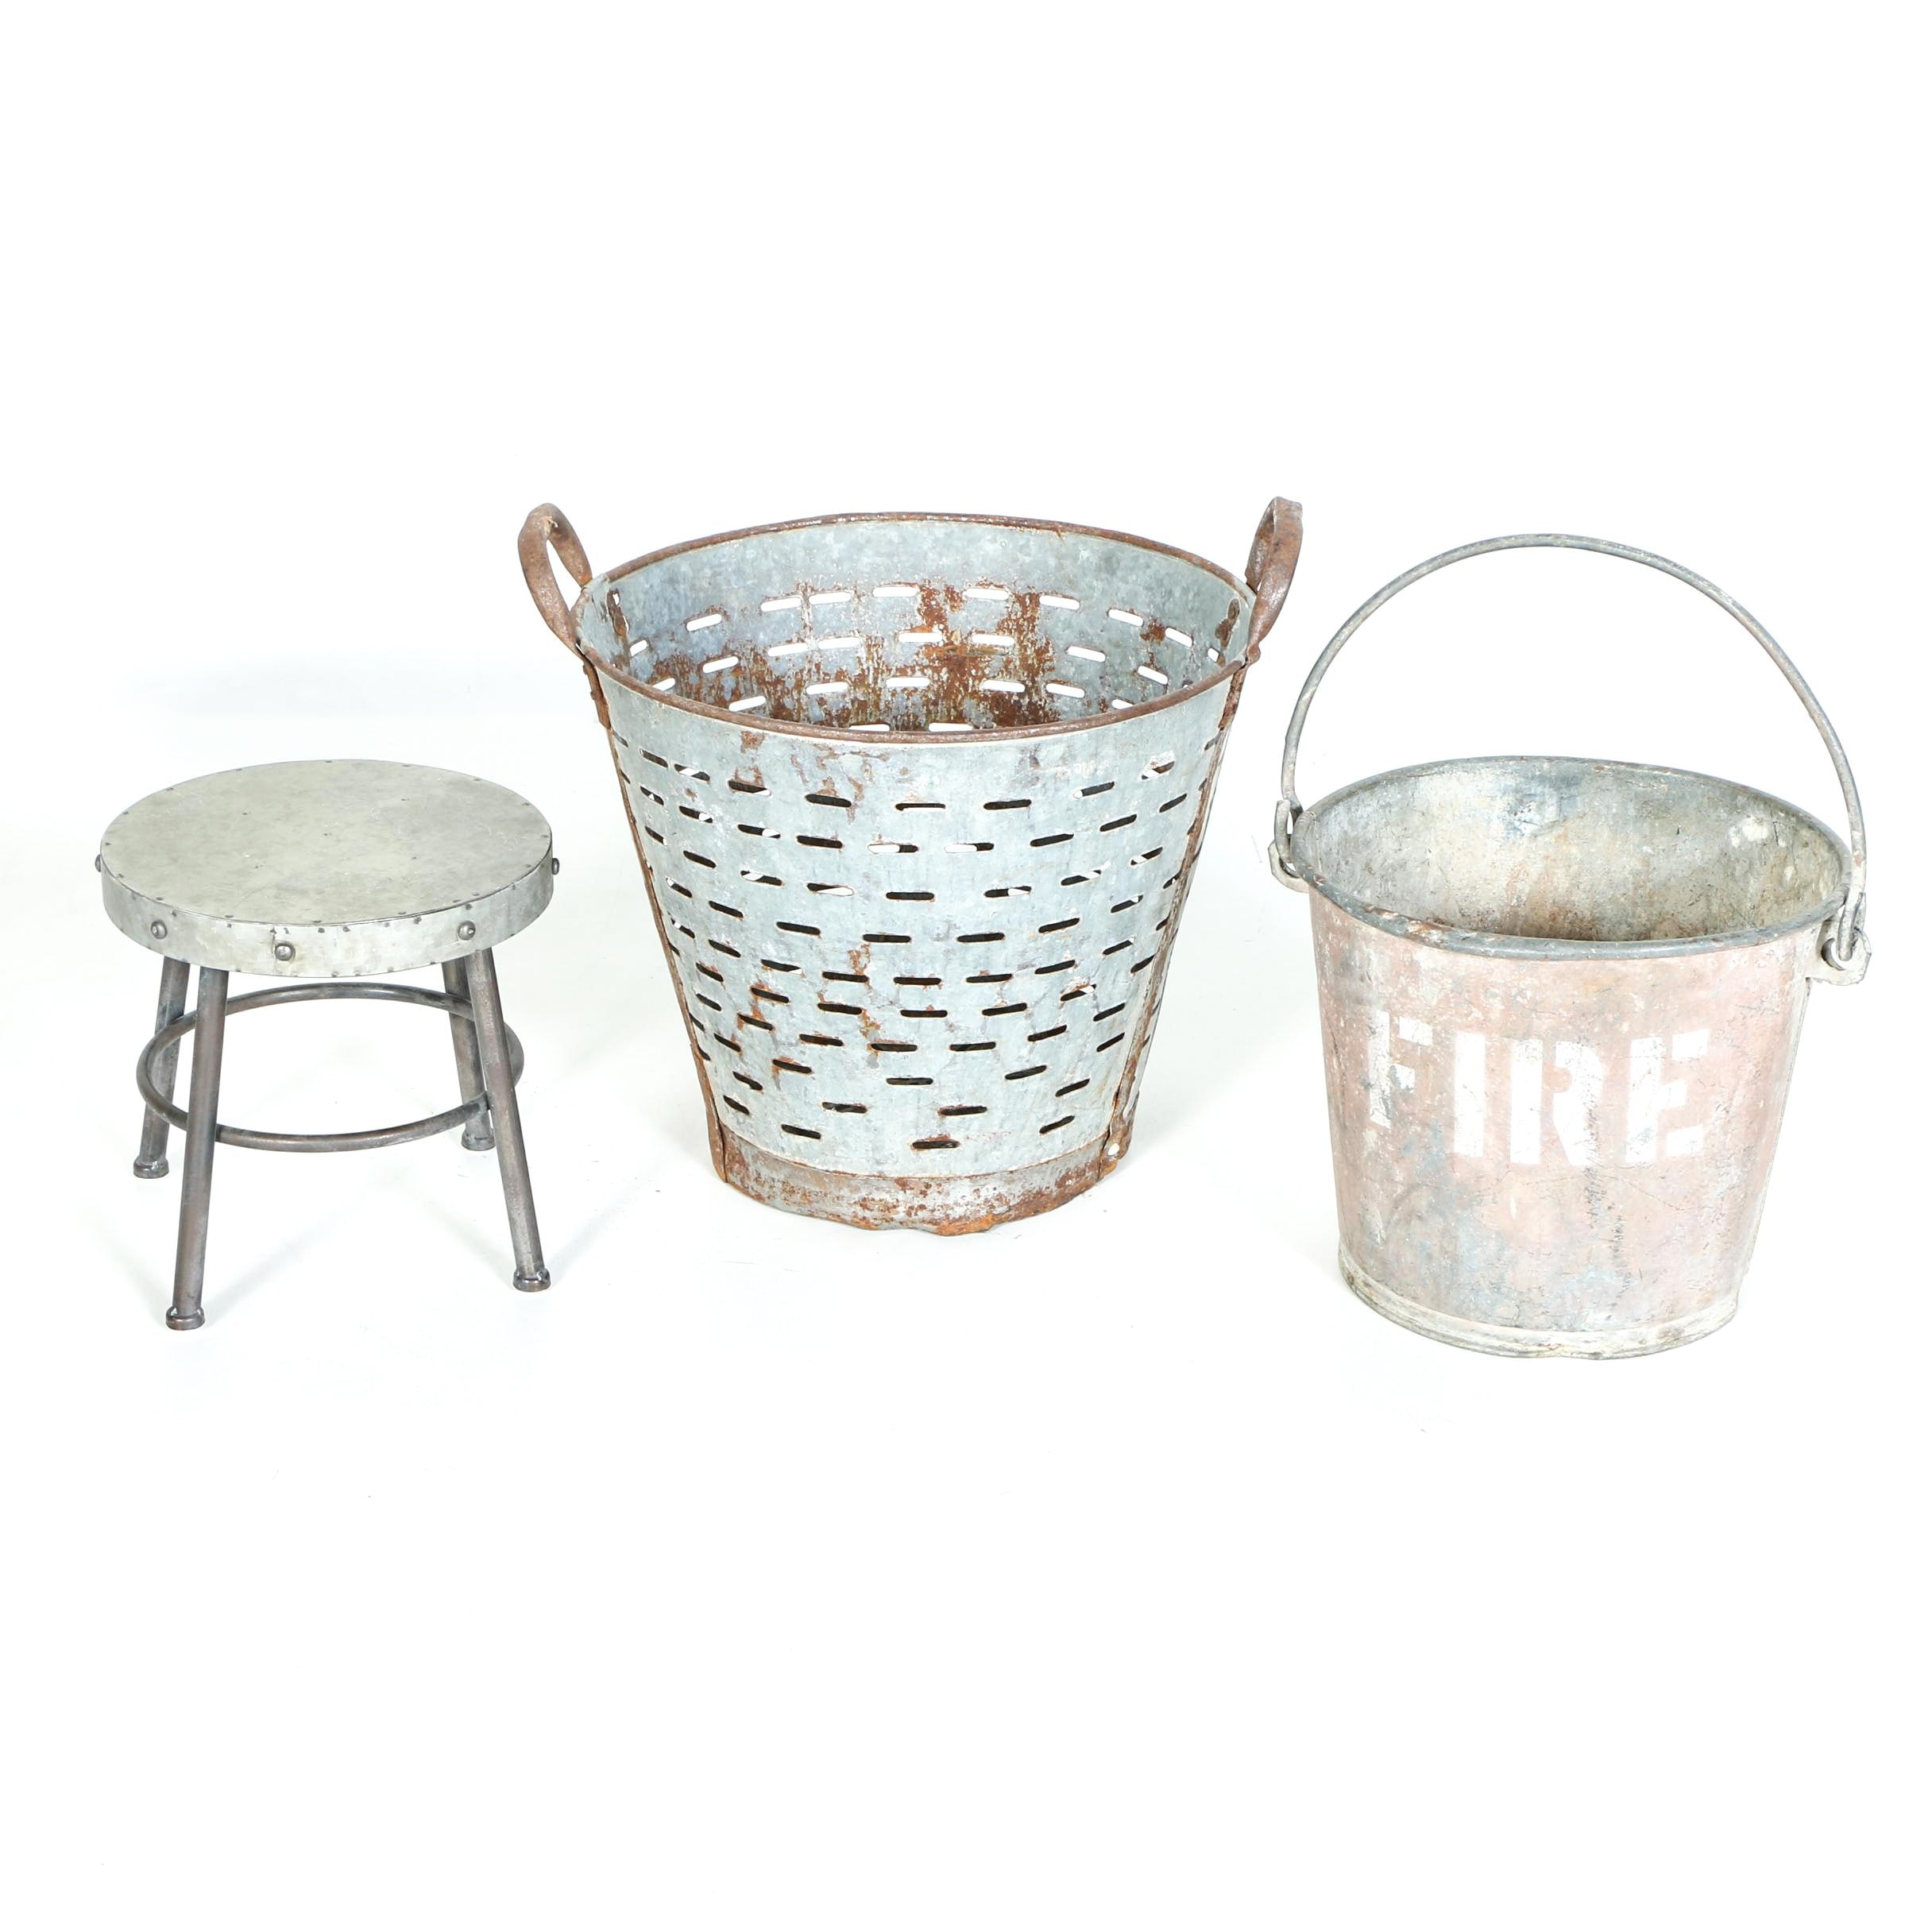 Metal Olive Bucket, Fire Pail, and Small Stool